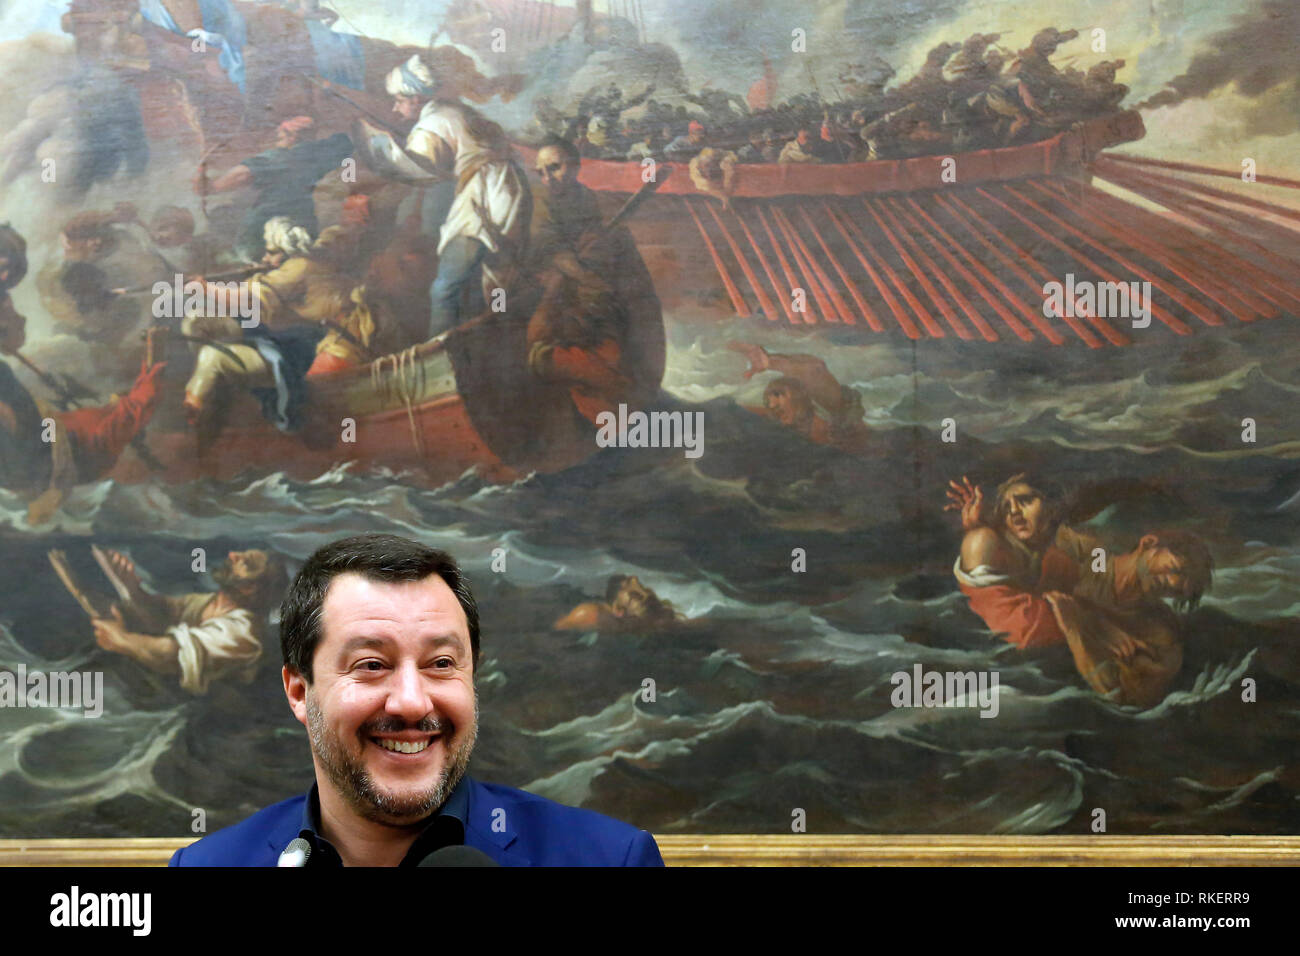 Roma, Italy. 11th Feb, 2019. Matteo Salvini and on his shoulders the painting 'Lepanto battle', with boats and shipwrecked, fought on October 7th 1571 during the Cipro's War, between the Ottomans and the Christians Navy Rome February 11th 2019. Sala Salvadori. The Italyn Minister of Internal Affairs in press conference after the outcome of regional elections in Abruzzo. Foto Samantha Zucchi Insidefoto Credit: insidefoto srl/Alamy Live News Stock Photo